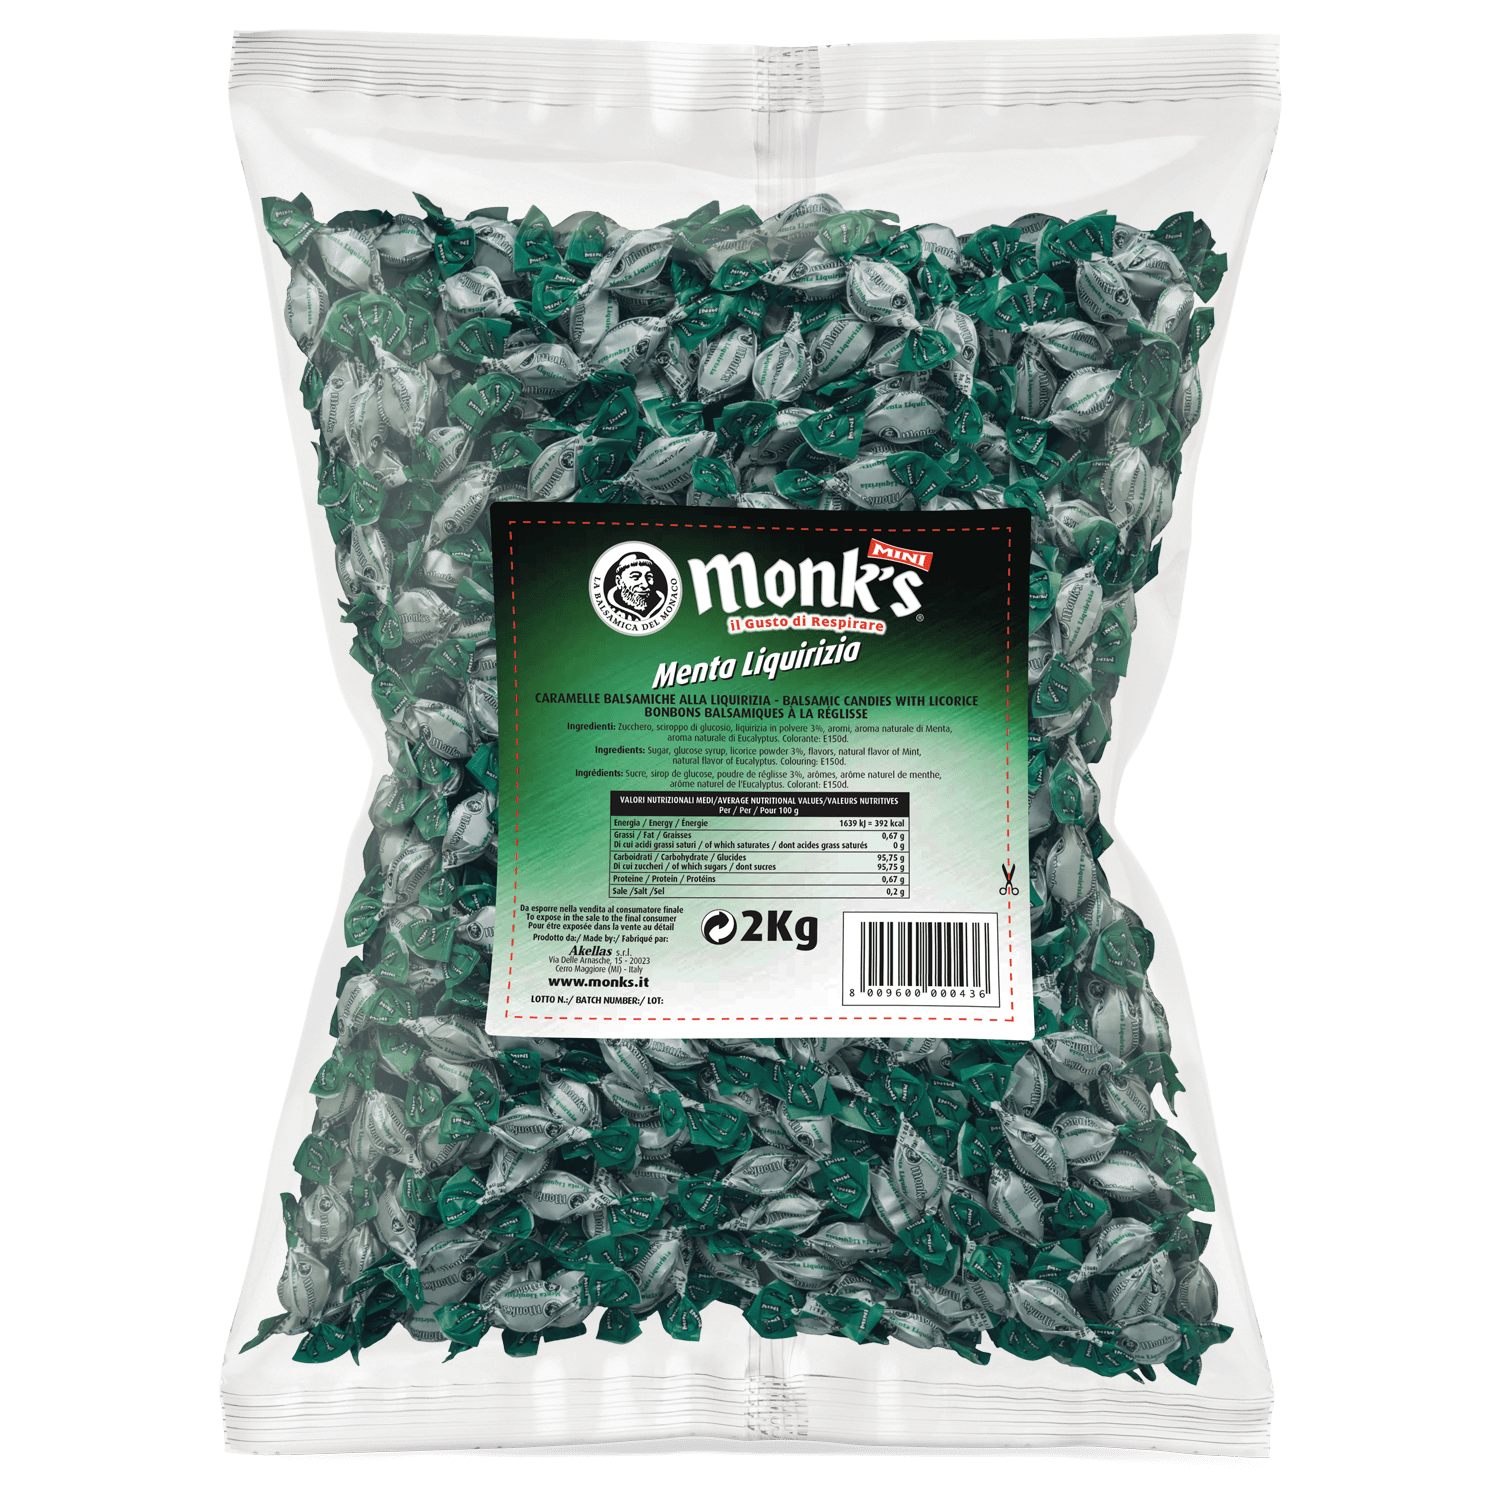 Monk's Mini Menta e Liquirizia